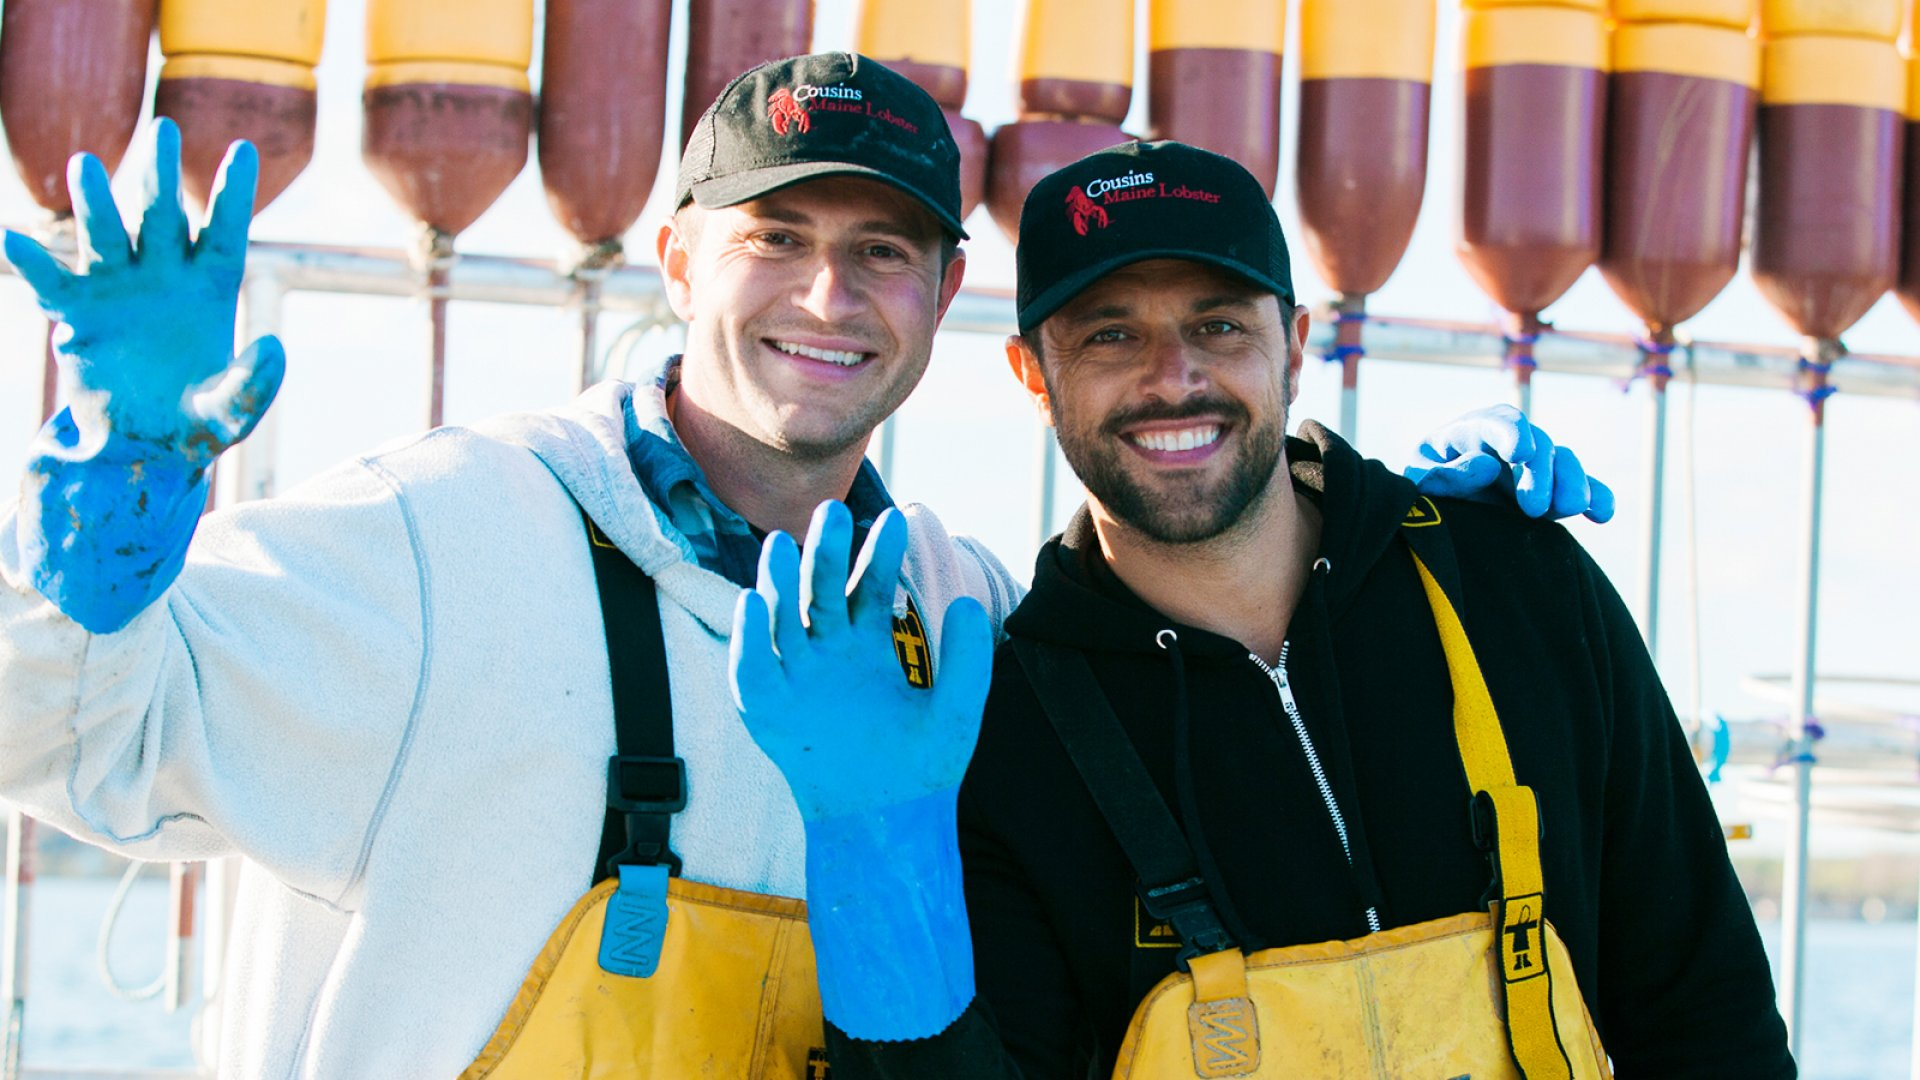 Cousins Maine Lobster co-founders Jim Tselikis (left) and Sabin Lomac.